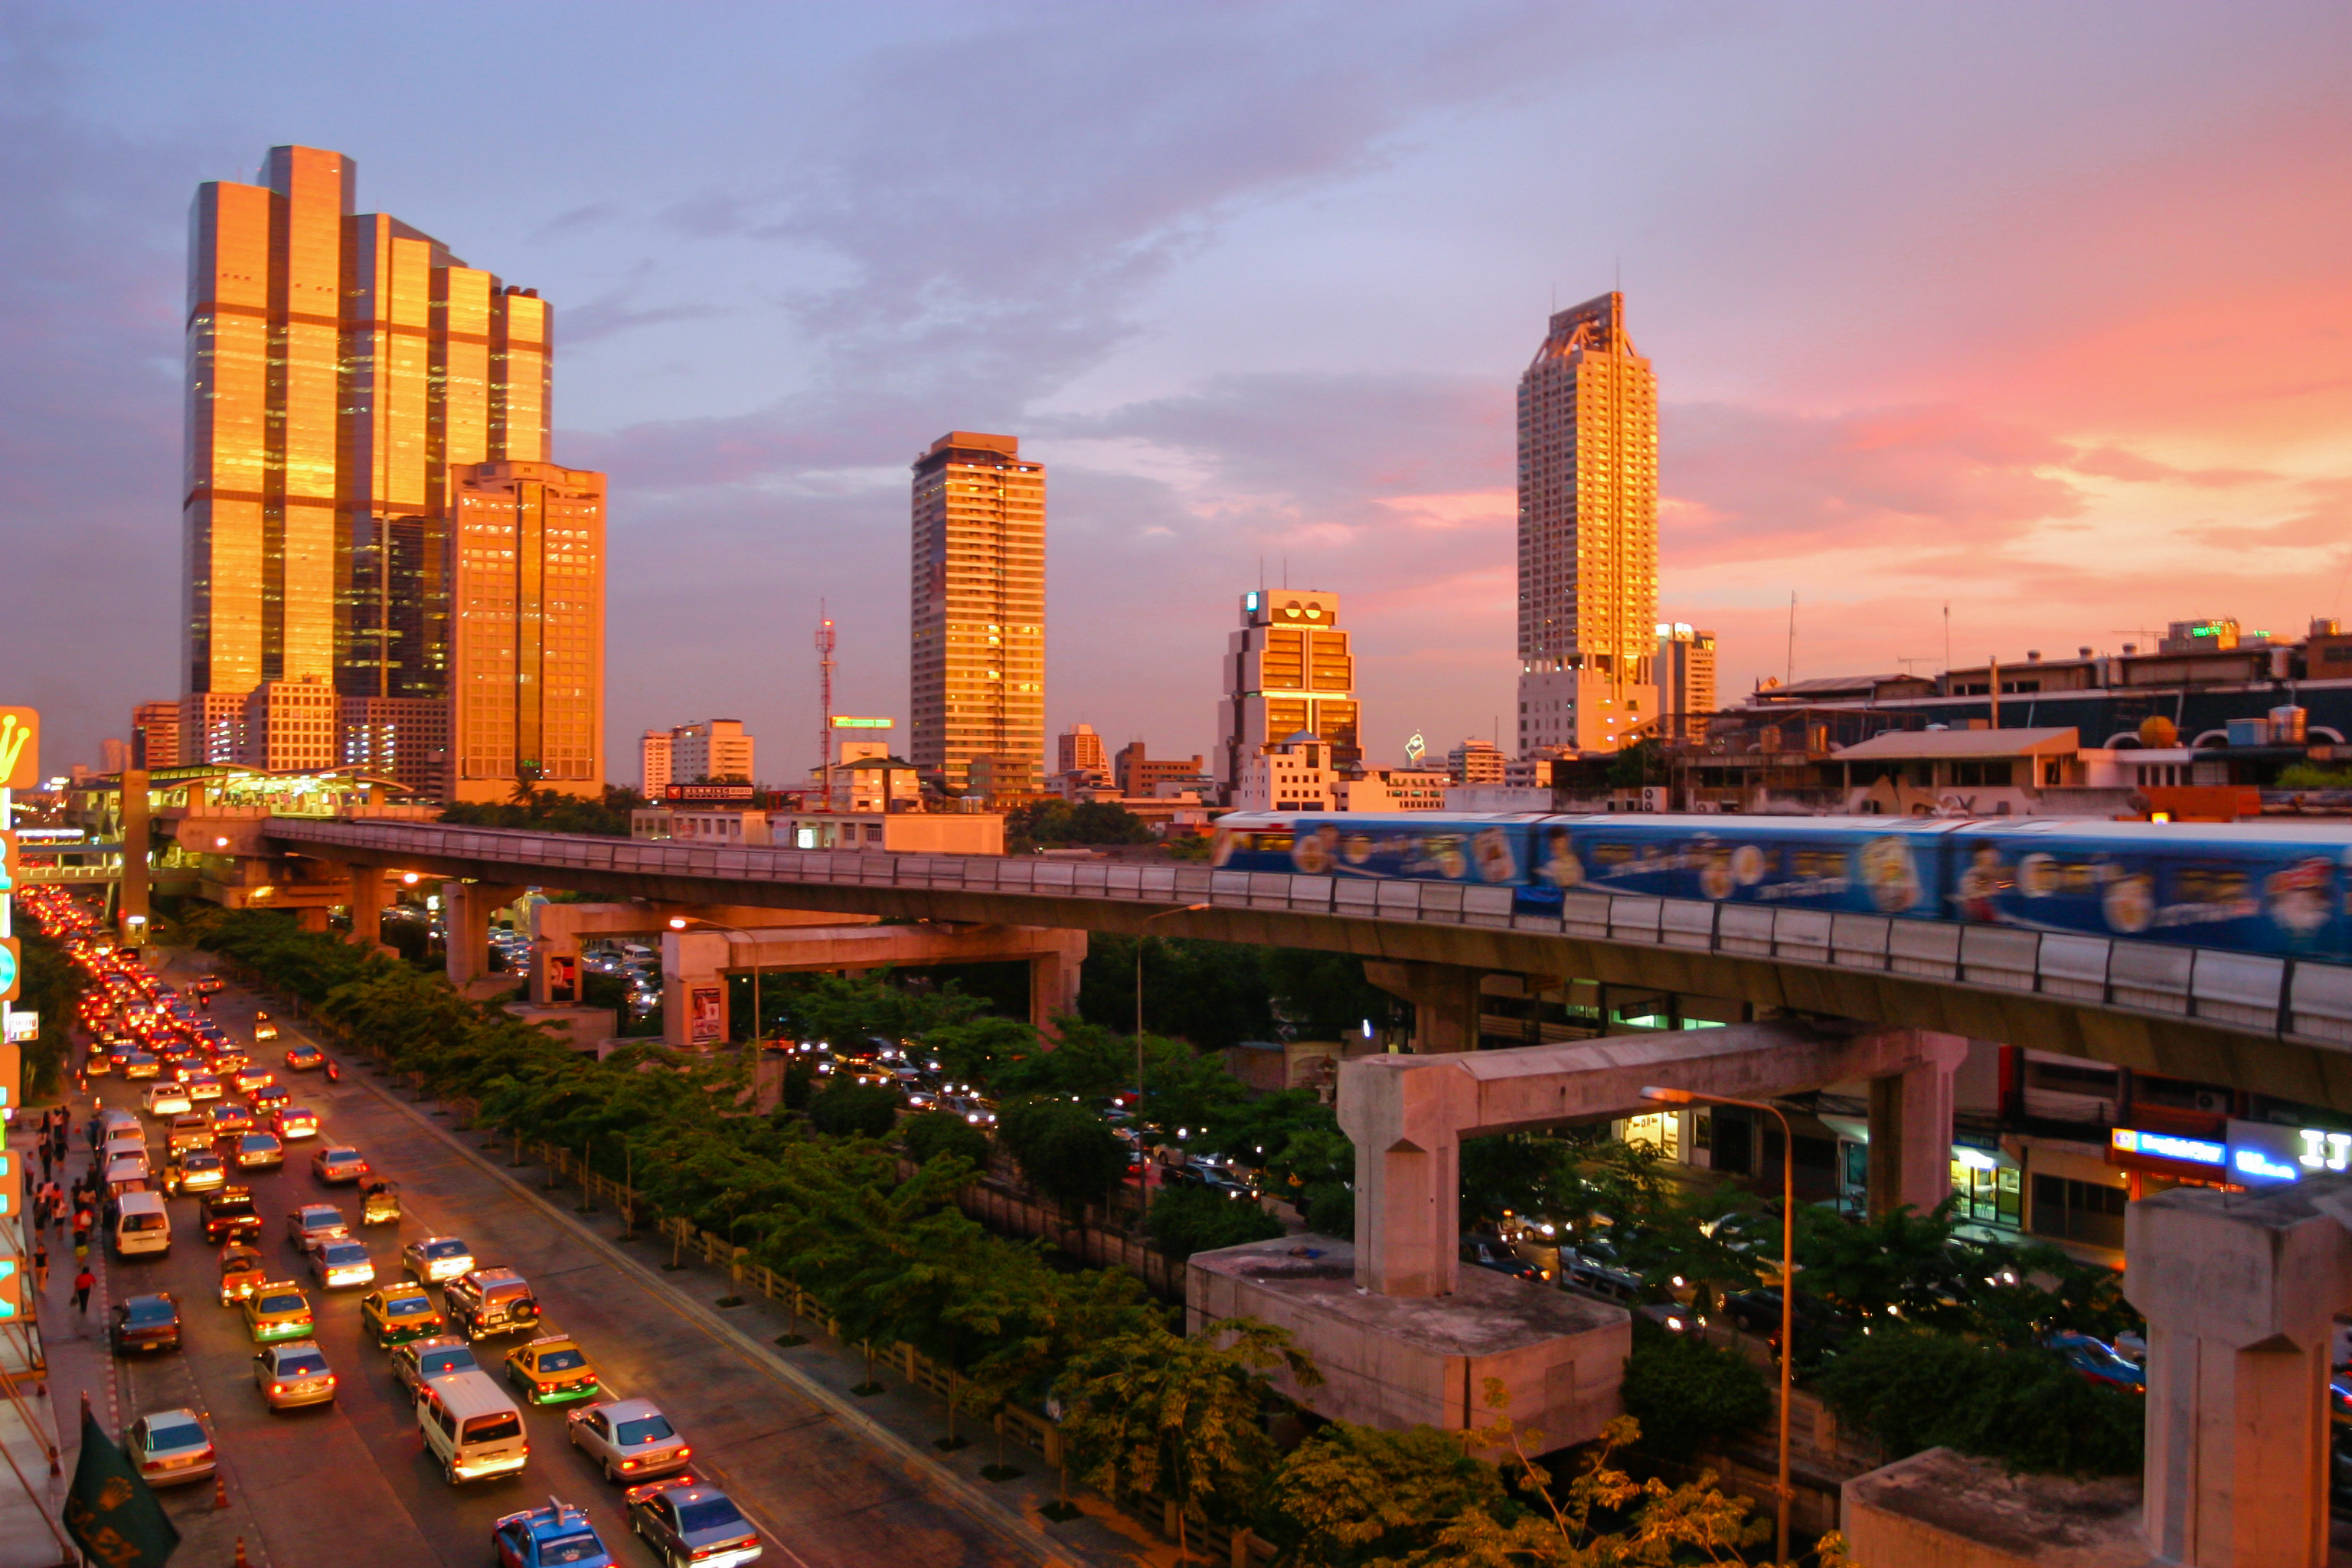 Hoteliers report an increase in Chinese visits to Bangkok